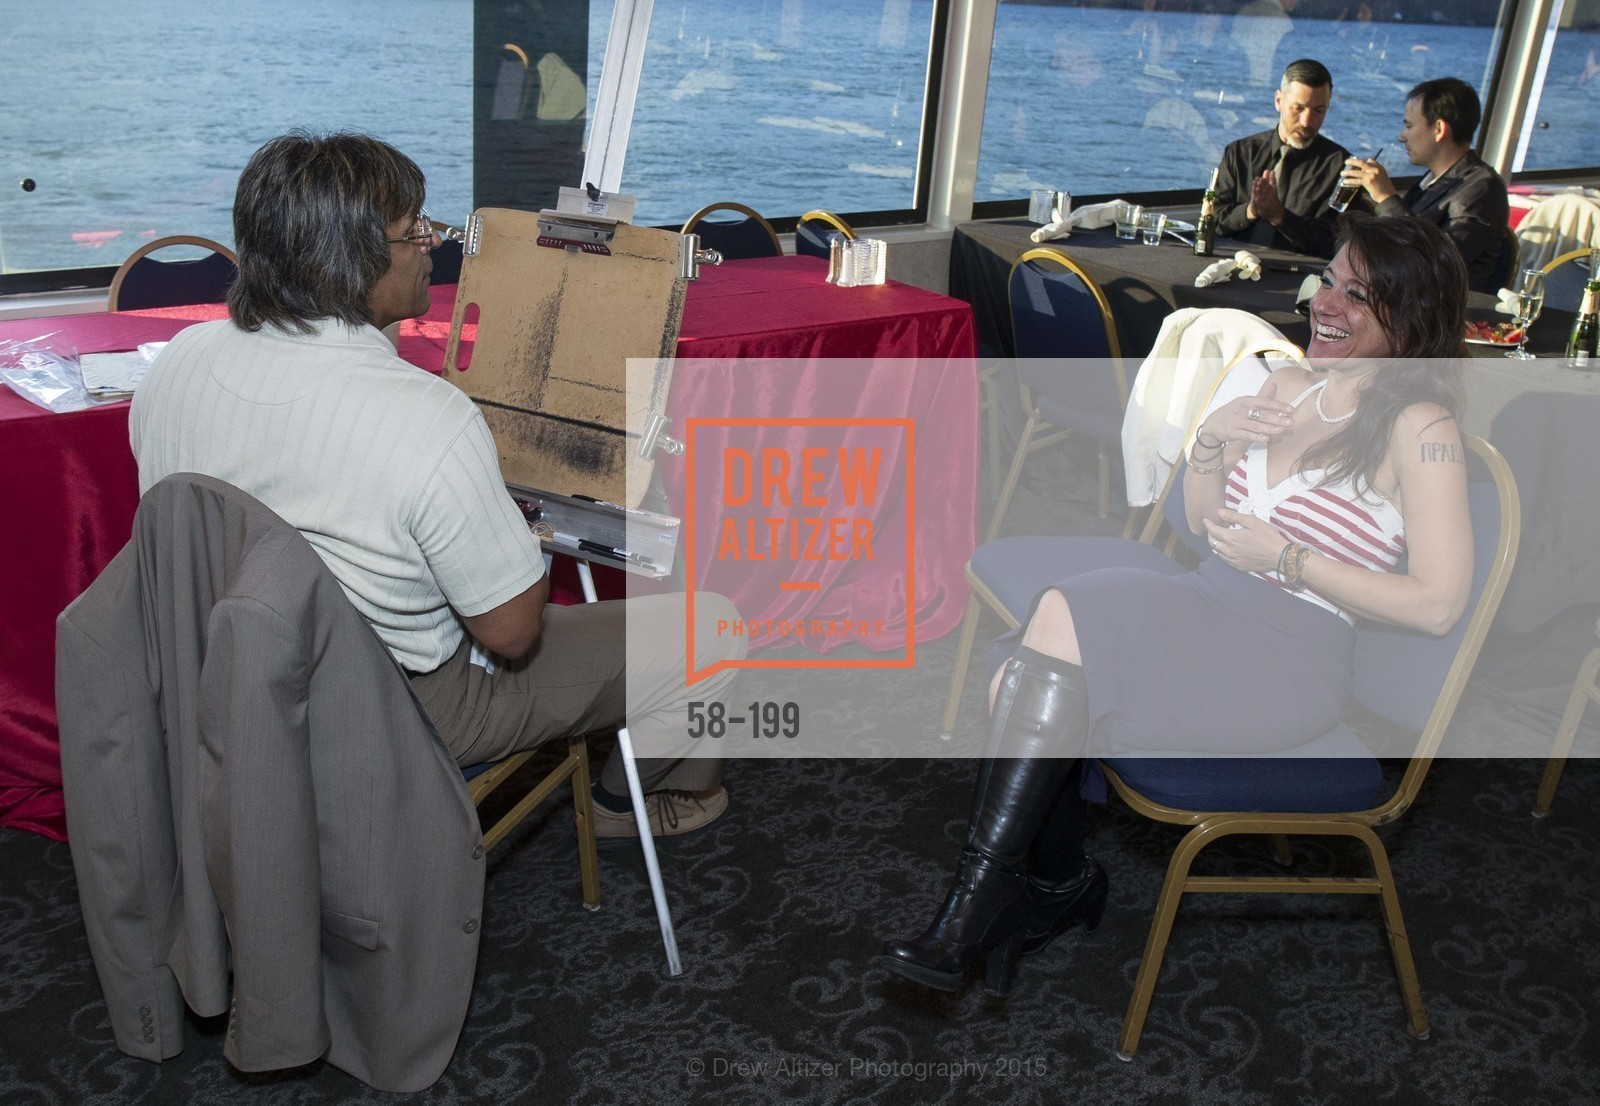 atmosphere, Practice Fusion Boat Cruise, July 10th, 2015, Photo,Drew Altizer, Drew Altizer Photography, full-service agency, private events, San Francisco photographer, photographer california